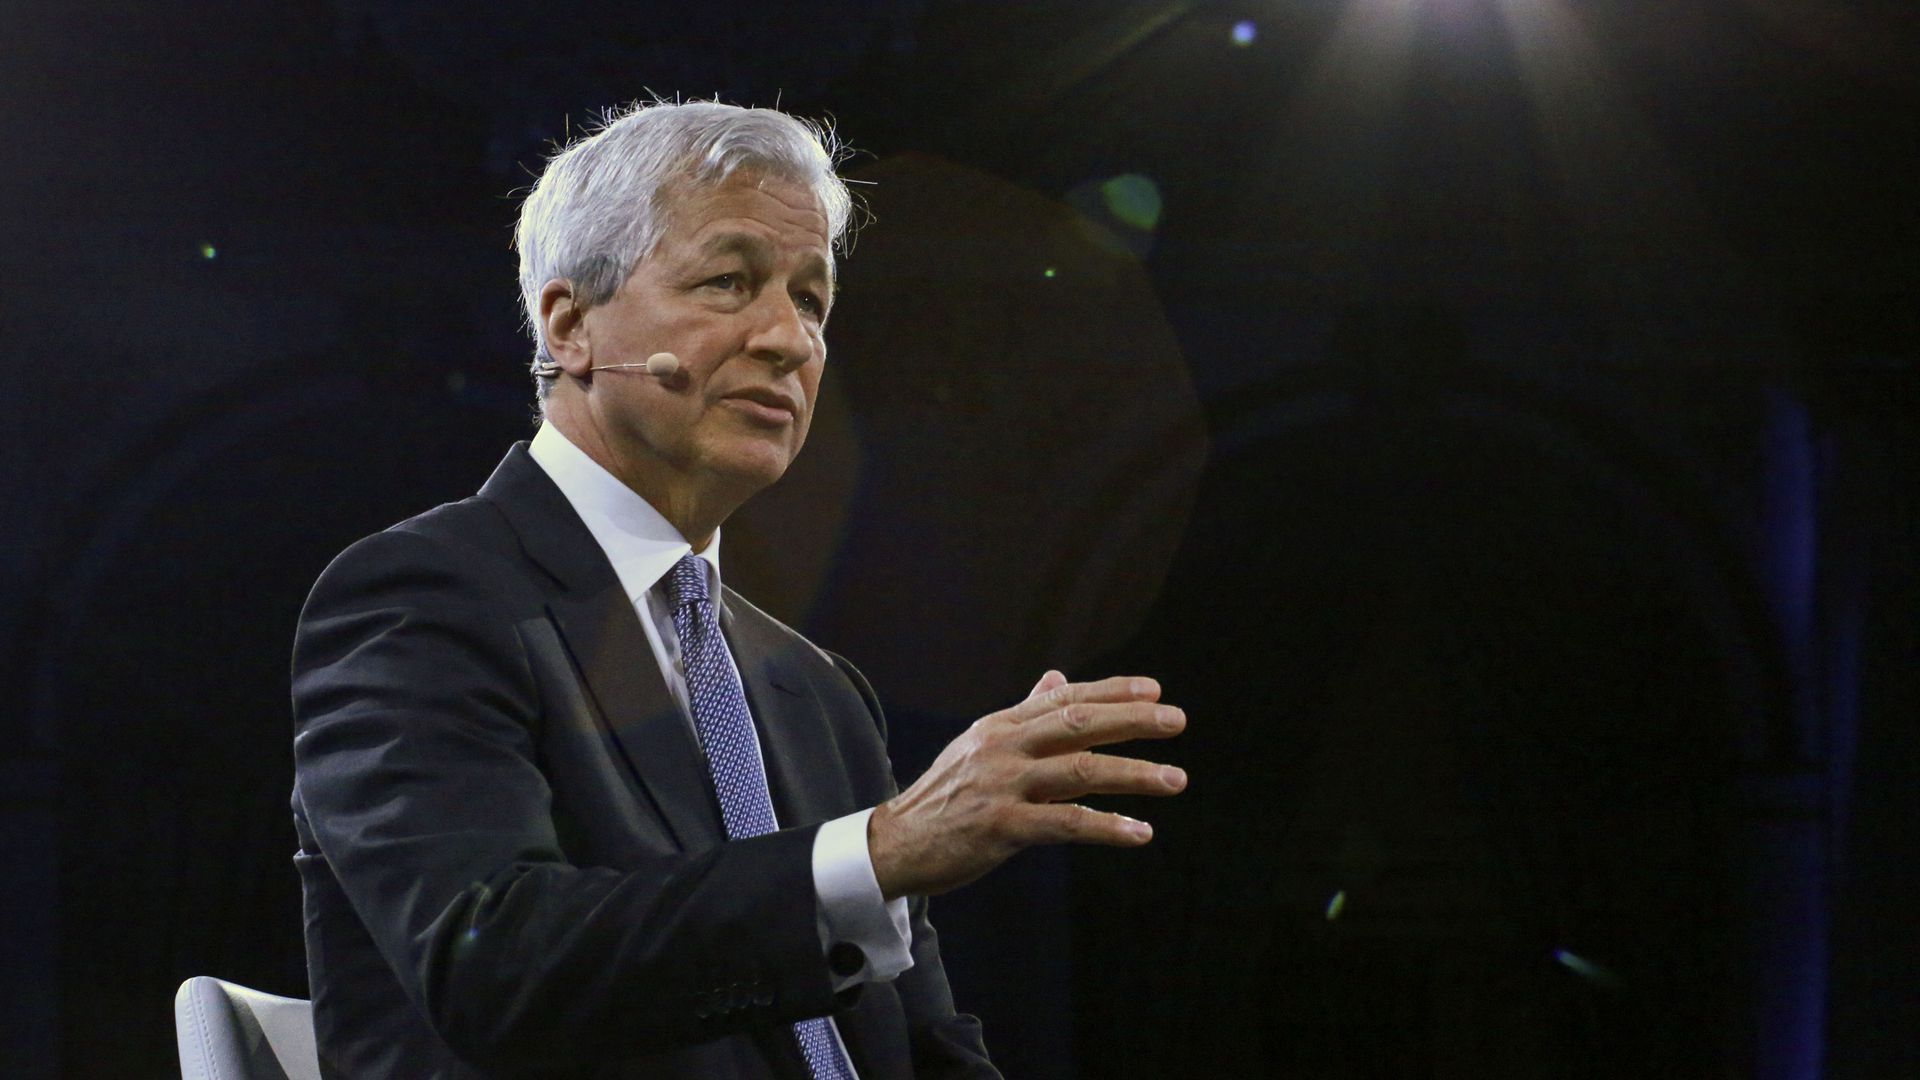 Jamie Dimon, chairman & CEO of JP Morgan Chase